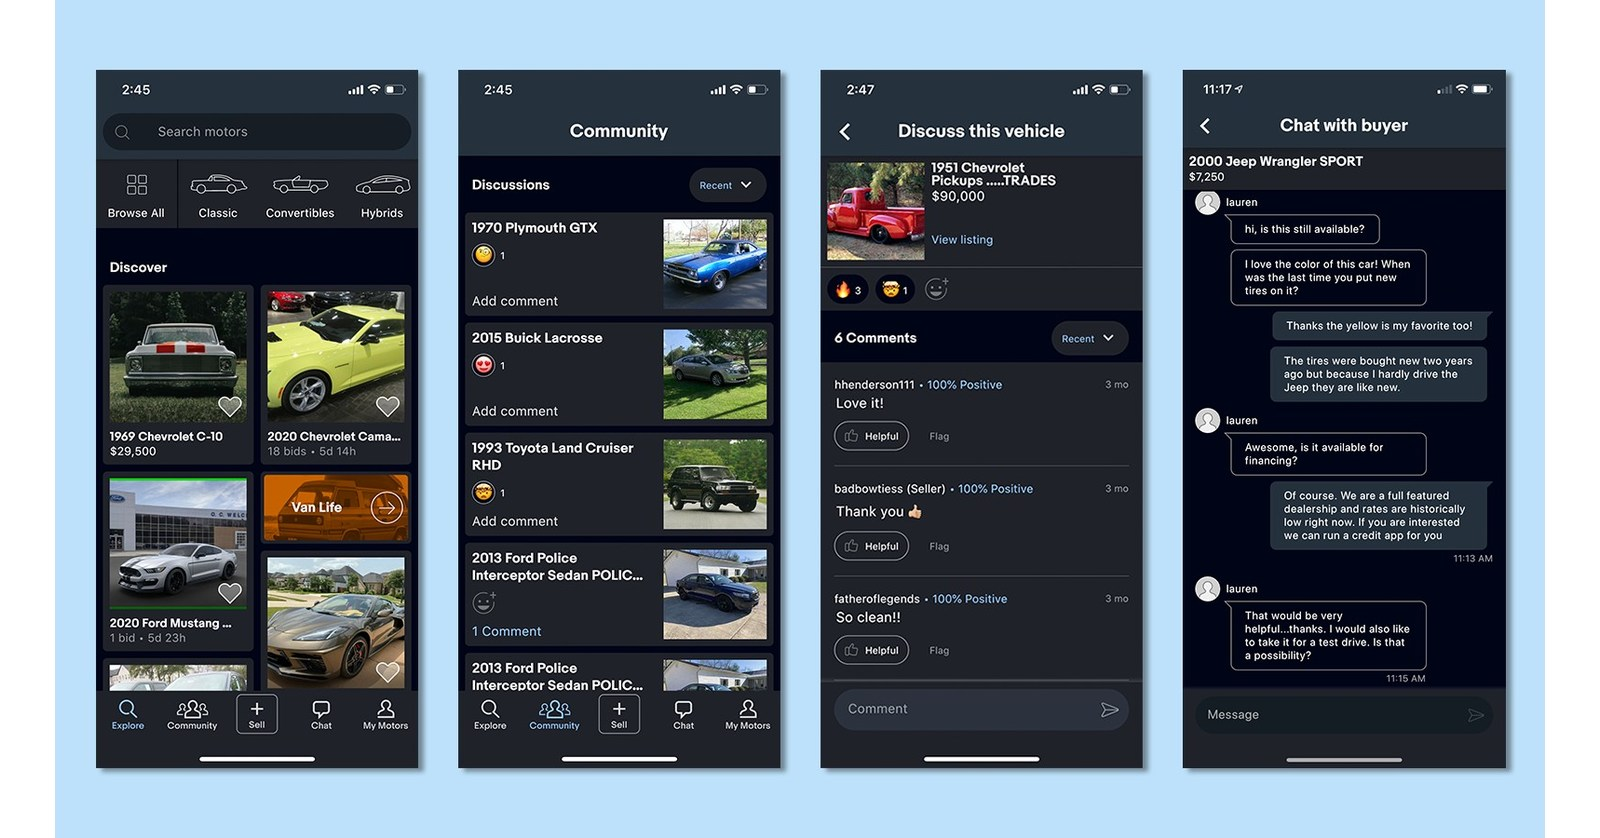 Ebay Motors Mobile App Launches Escrow And New Chat Features